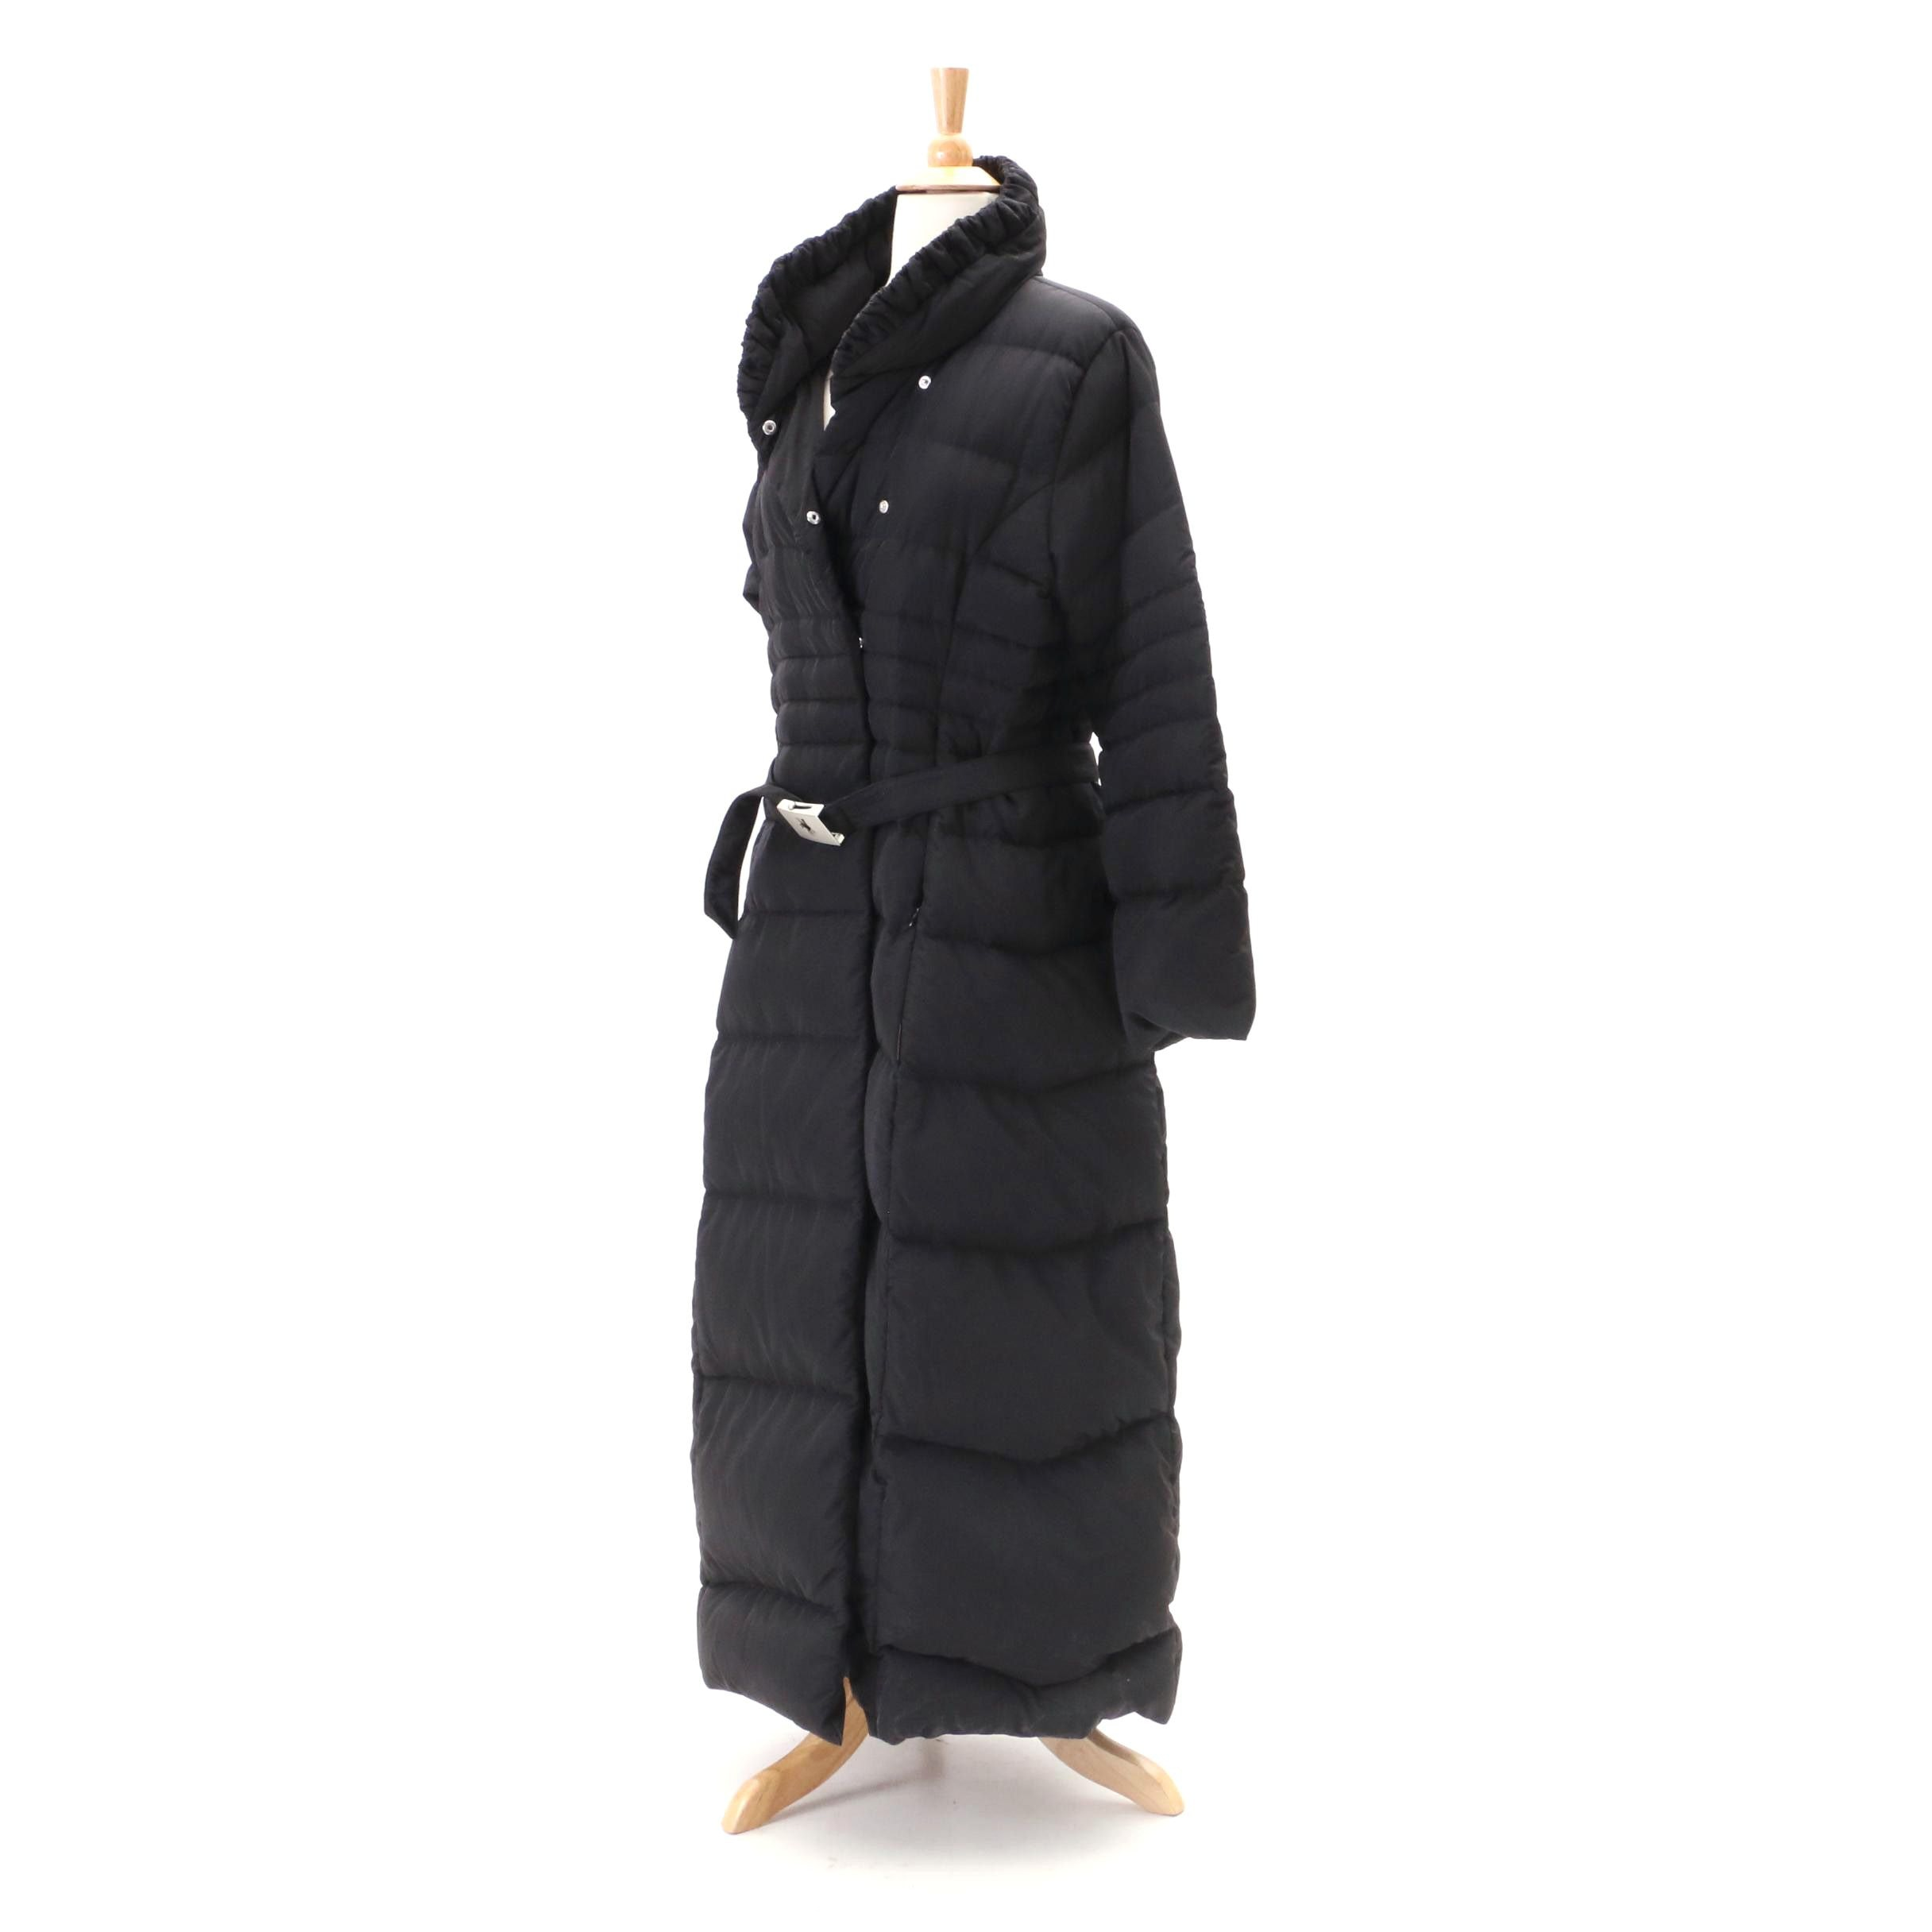 Moncler Full-Length Black Puffer Coat